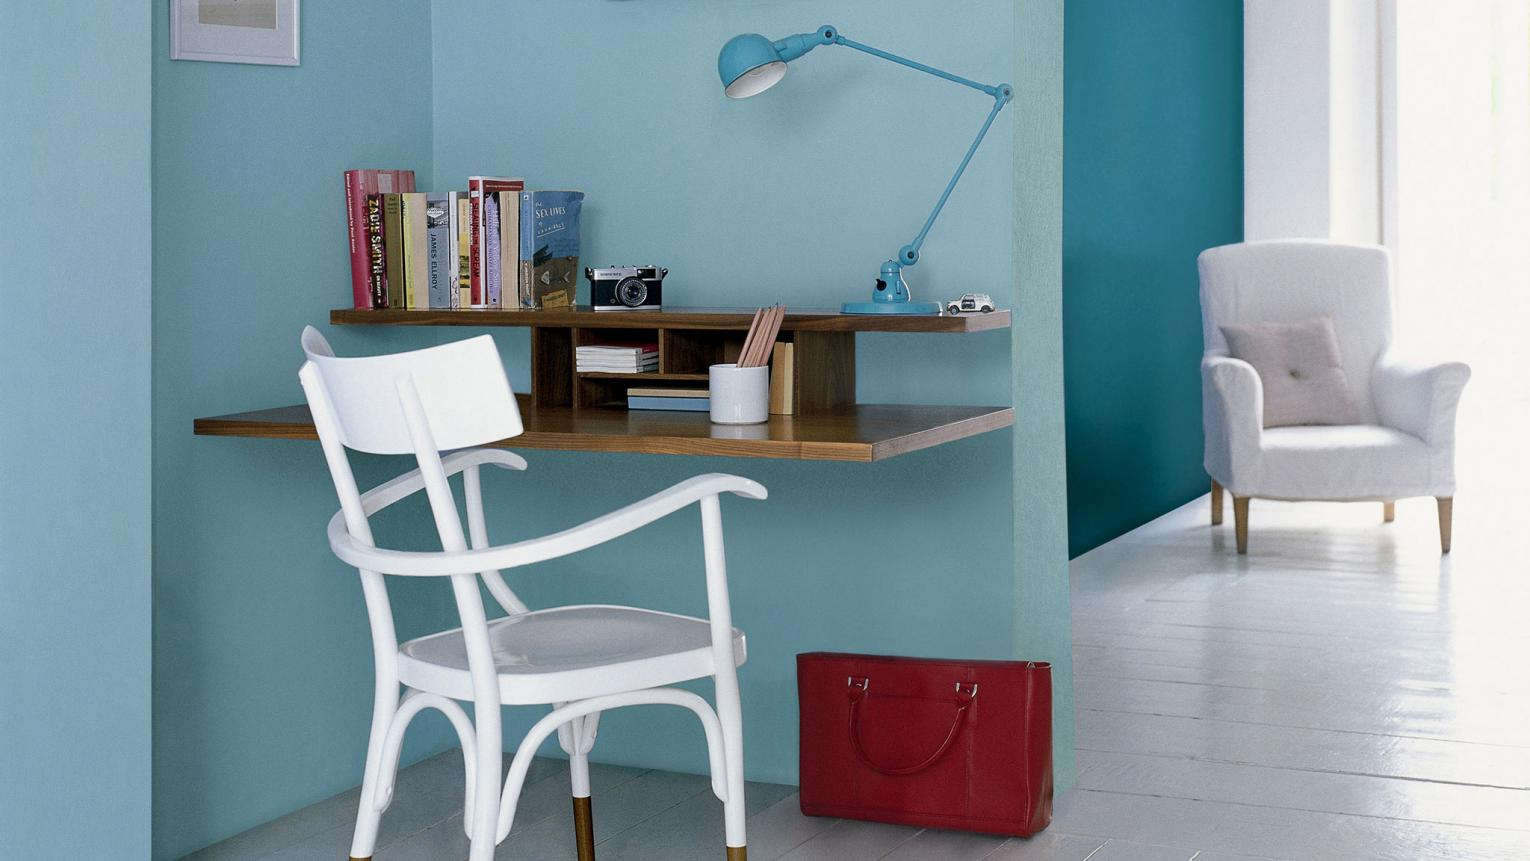 Make working at home a pleasure with a dedicated study area decorated in beautiful shades of blue.